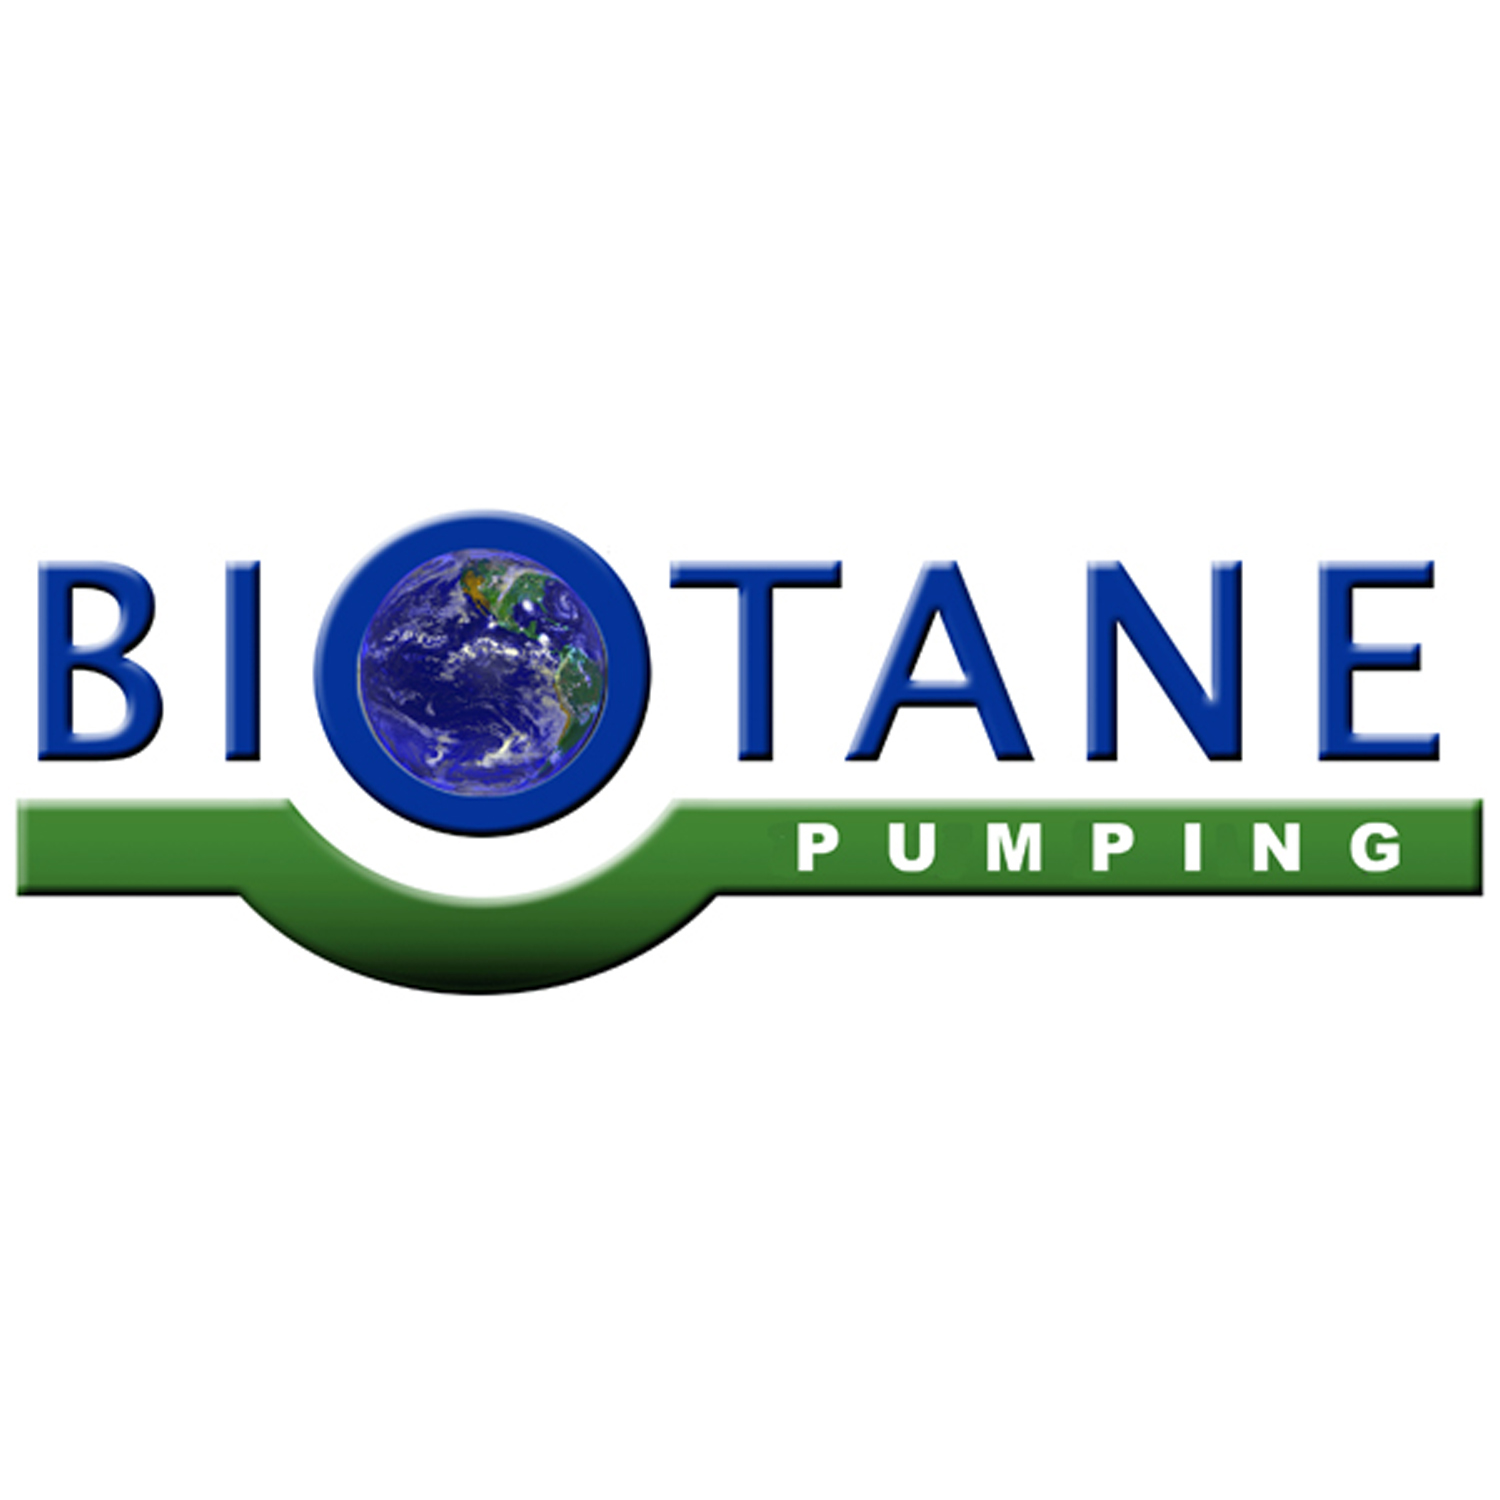 Biotane Pumping - Offering collection services of waste cooking oil, grease trap service, and hydro jetting to restaurants and businesses all throughout California, Nevada, and Arizona.